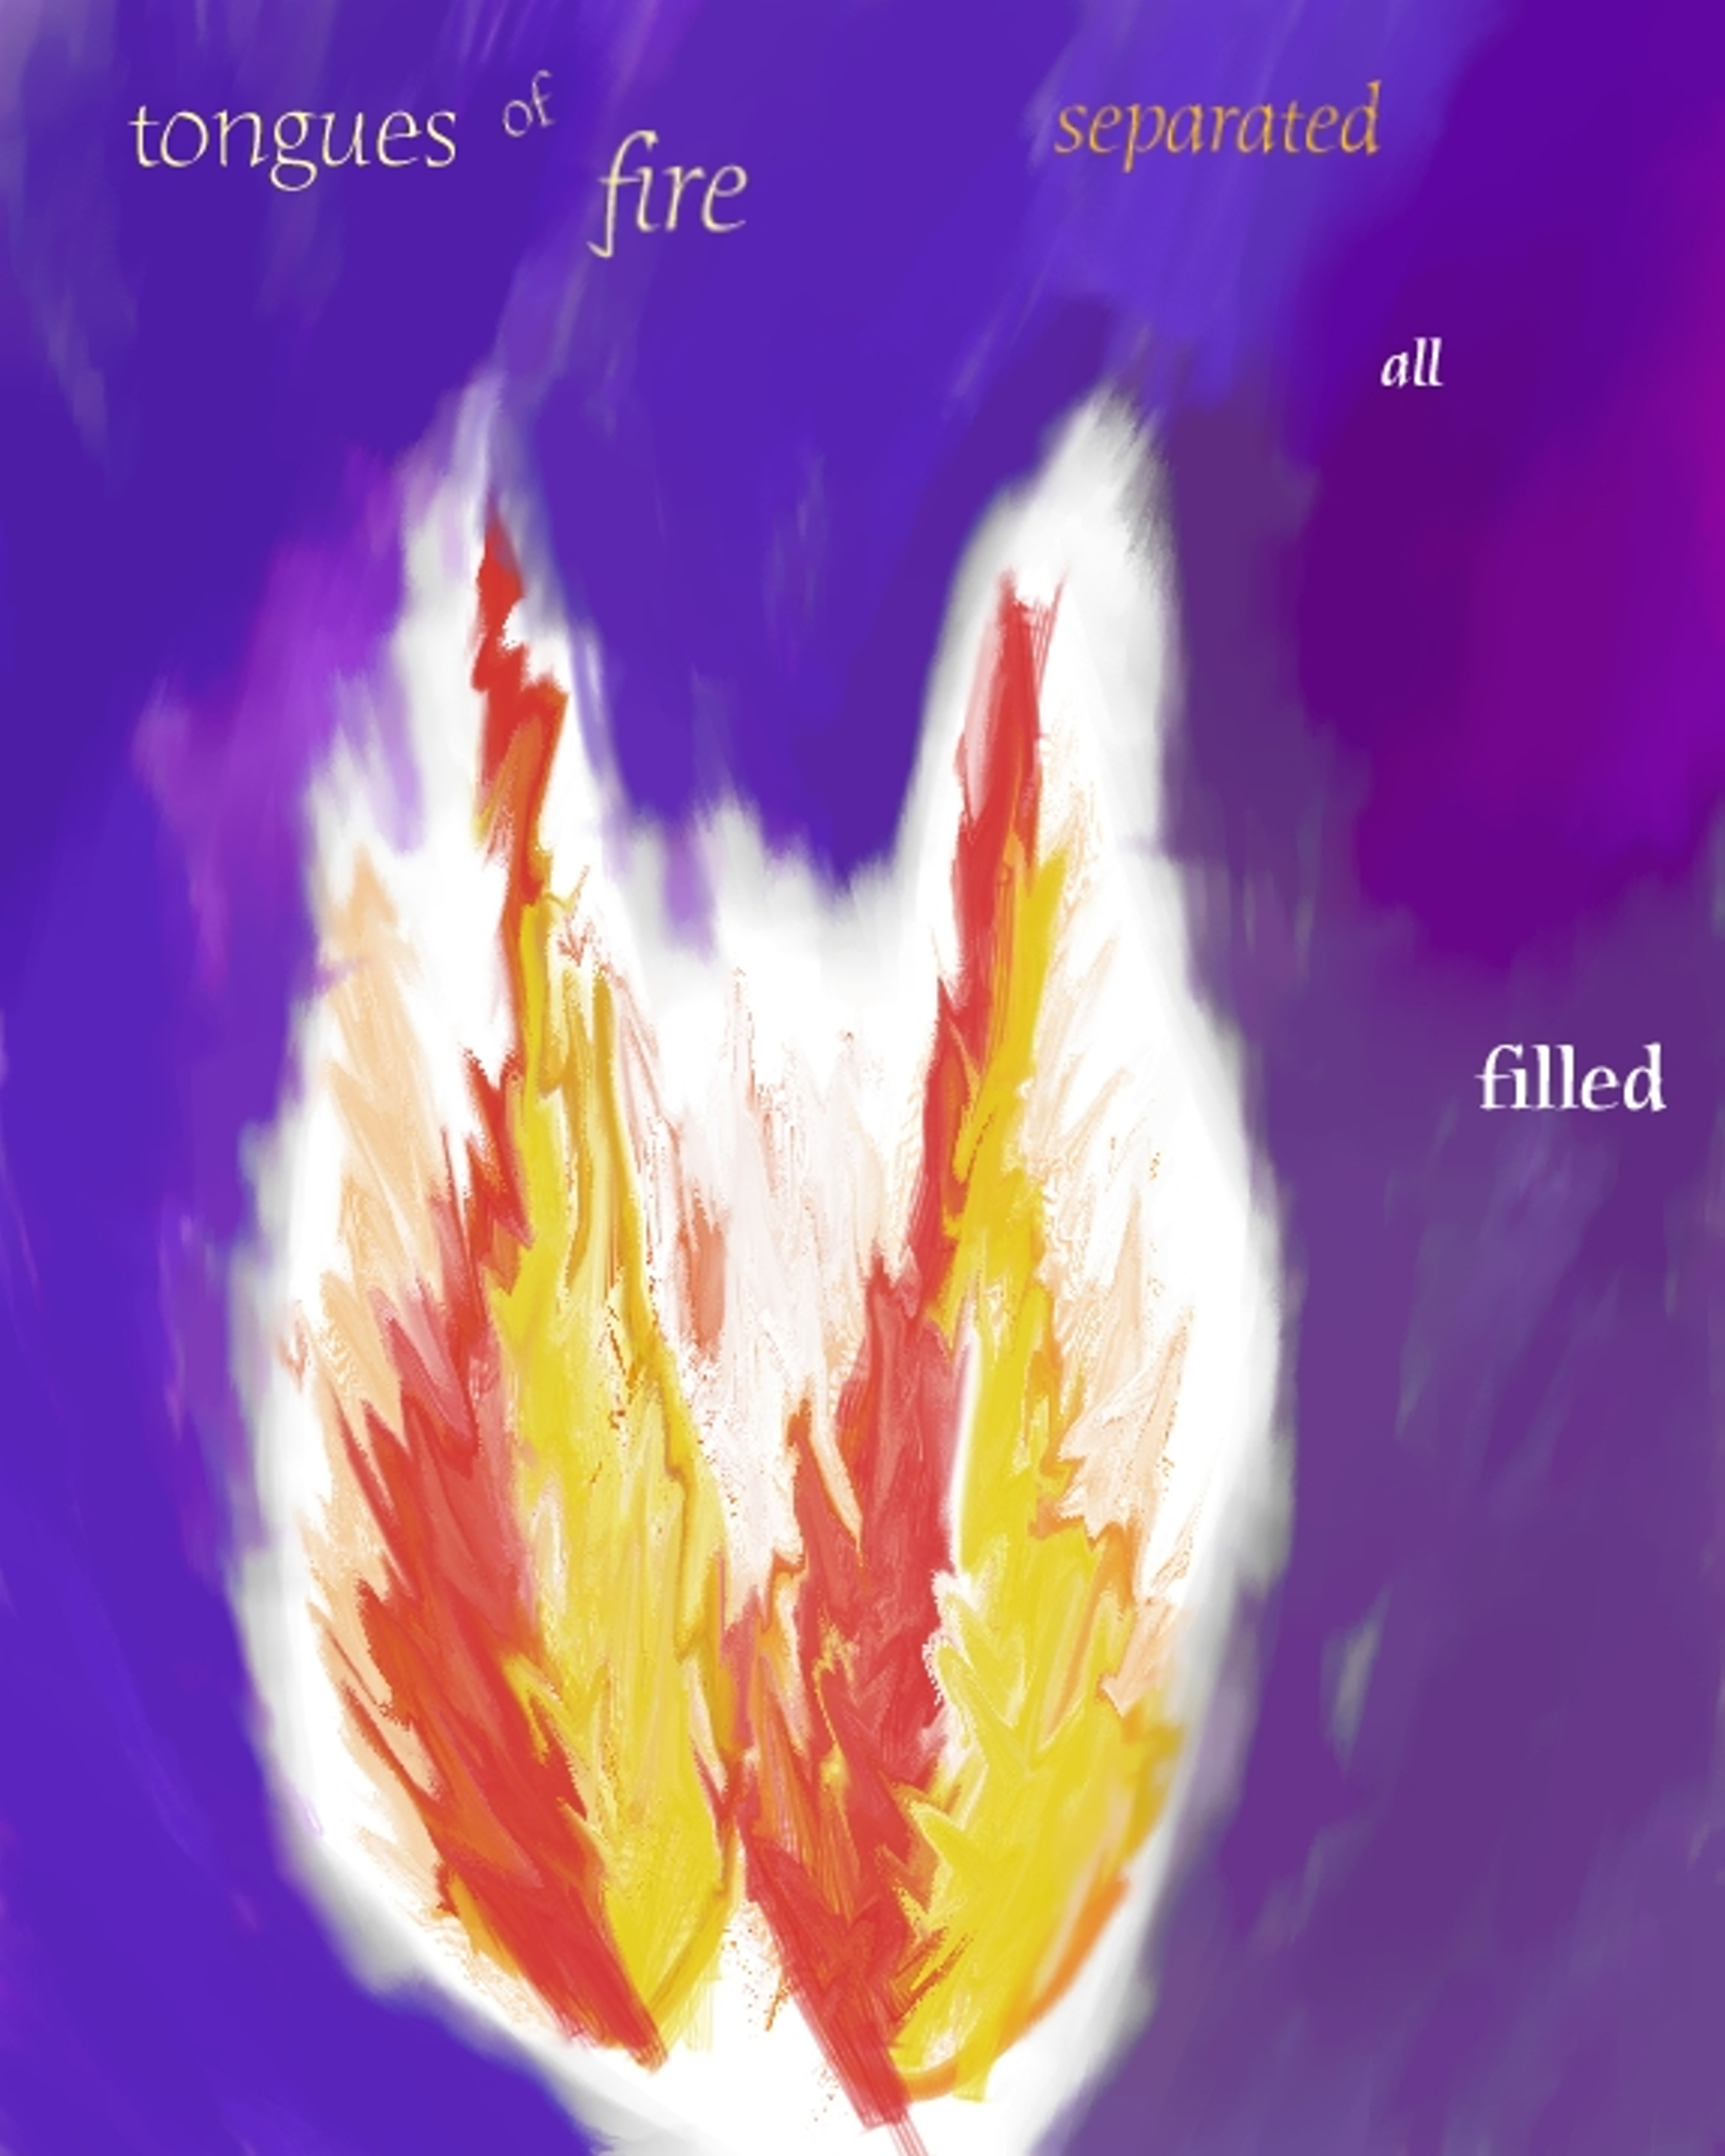 Pentecost, Fire Acts 2 image.